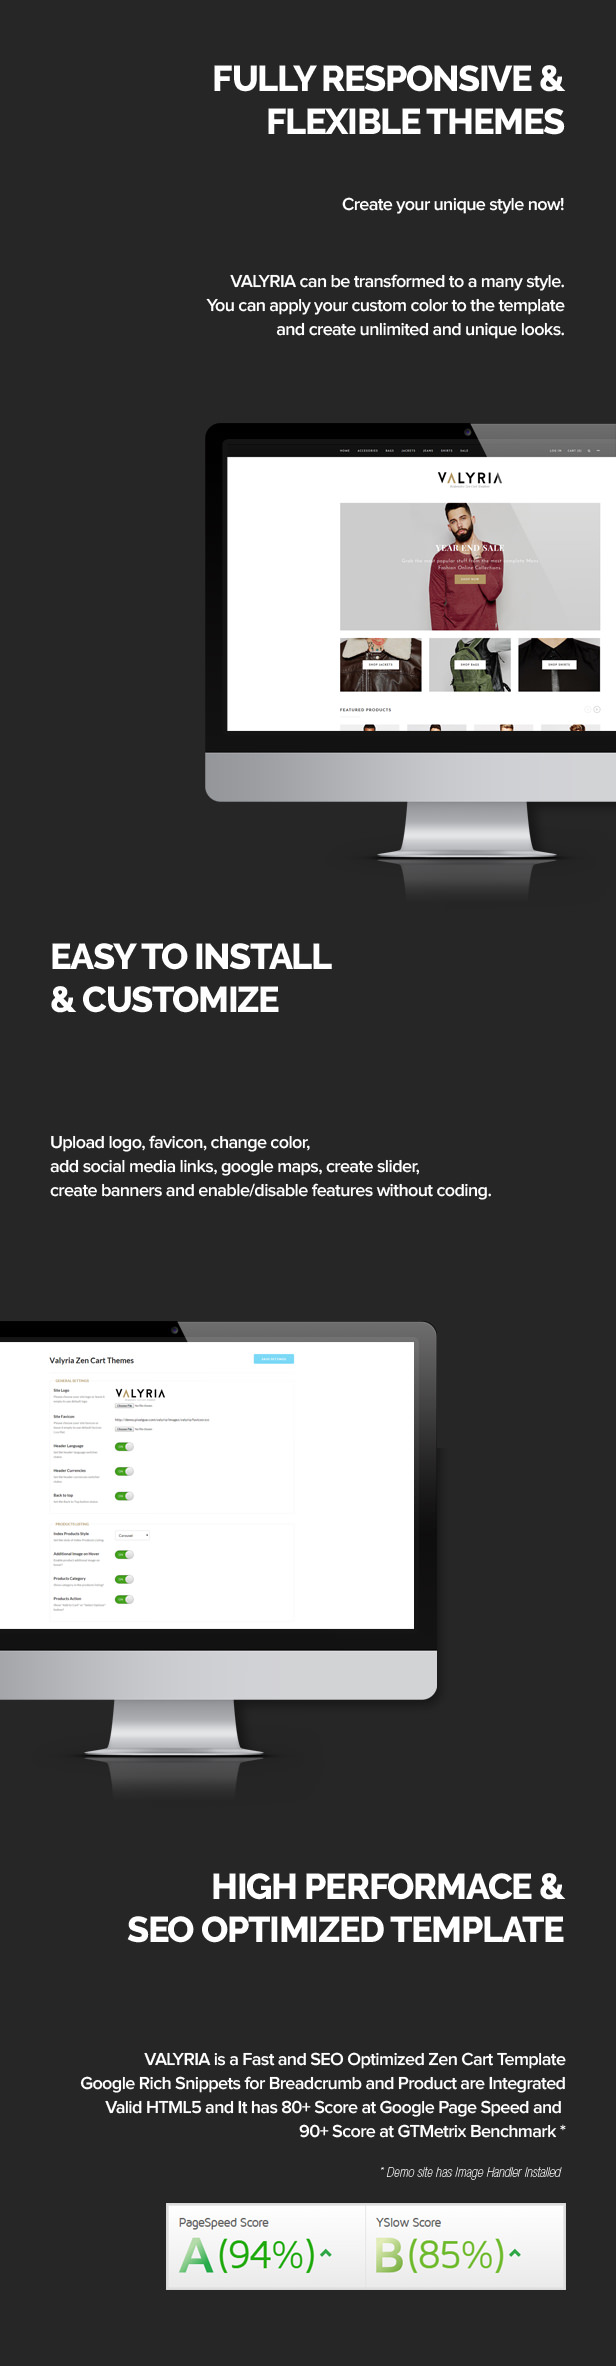 Pin by Nulledzero on Nulledzero2 | Templates, Cart, Zen